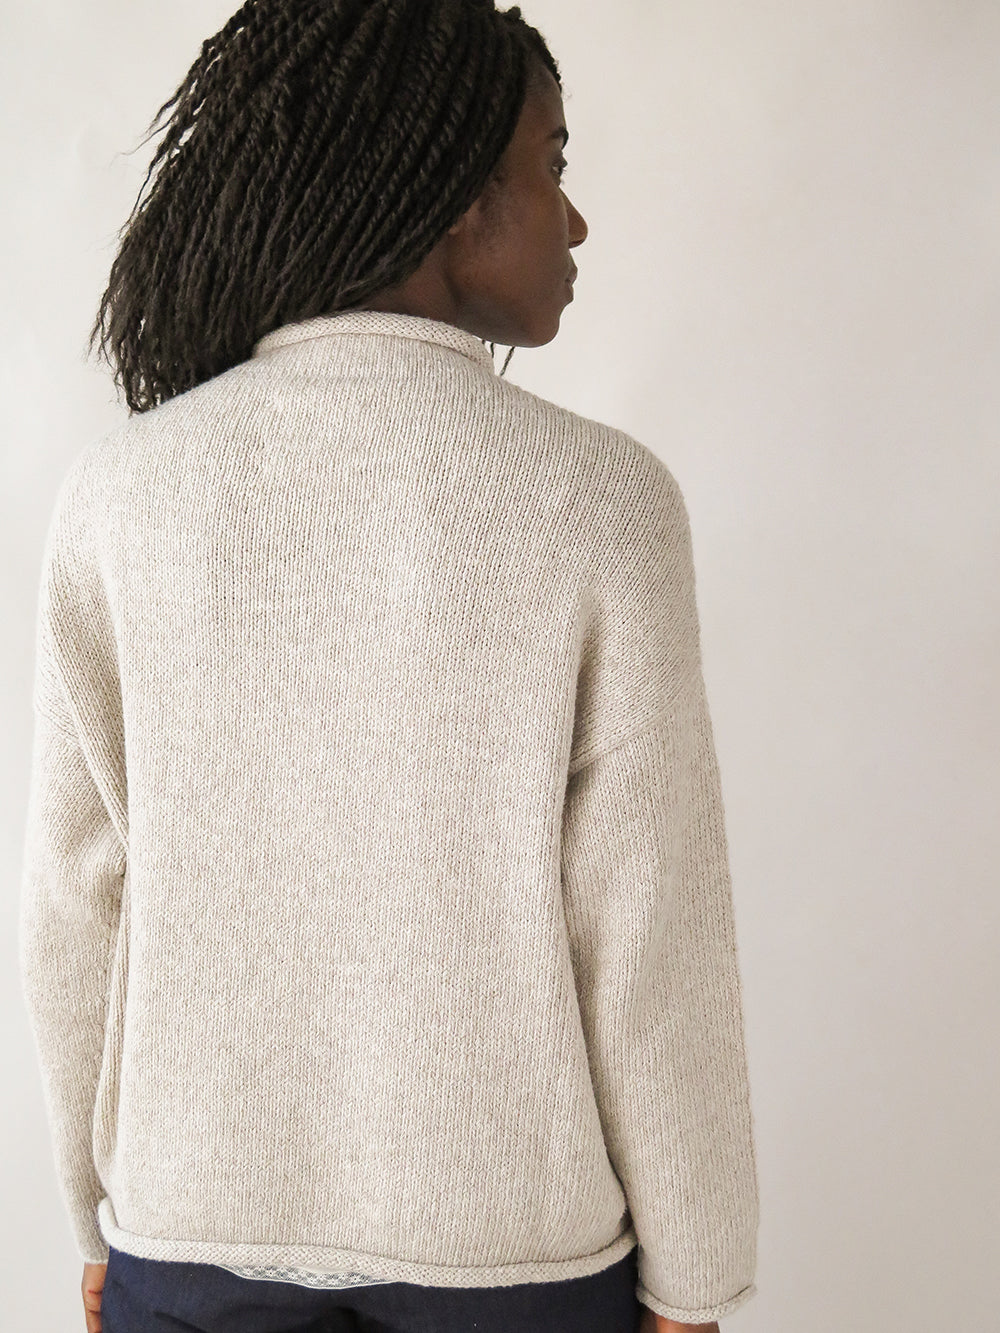 lauren manoogian bateau rollneck in oatmeal